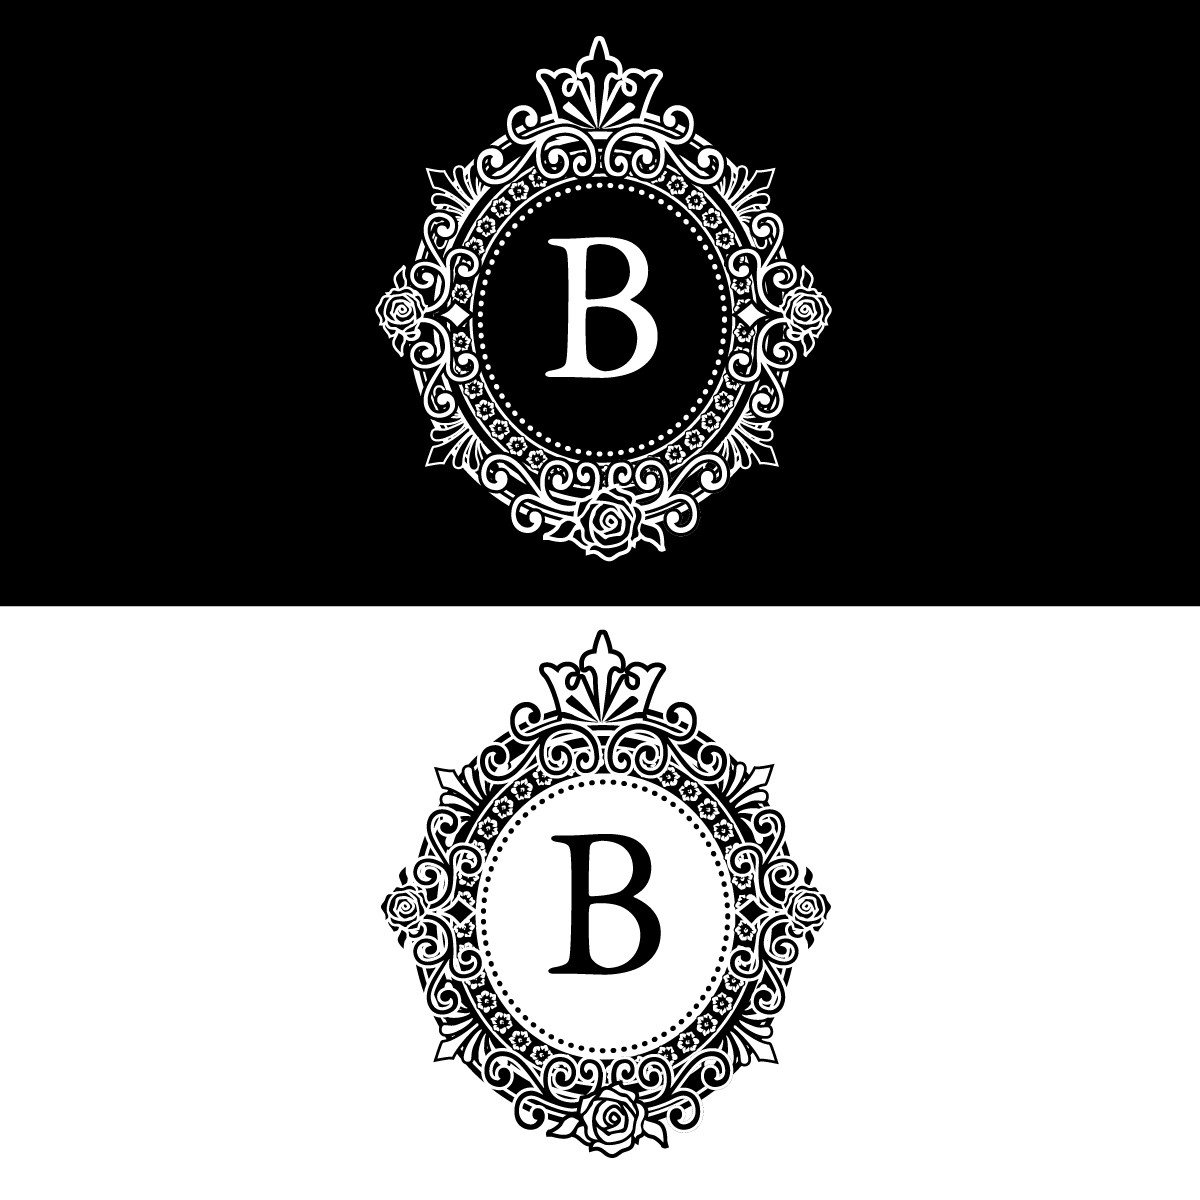 Create a classic, vintage oval photo frame logo with a 'B' inside centre for a high fashion look.